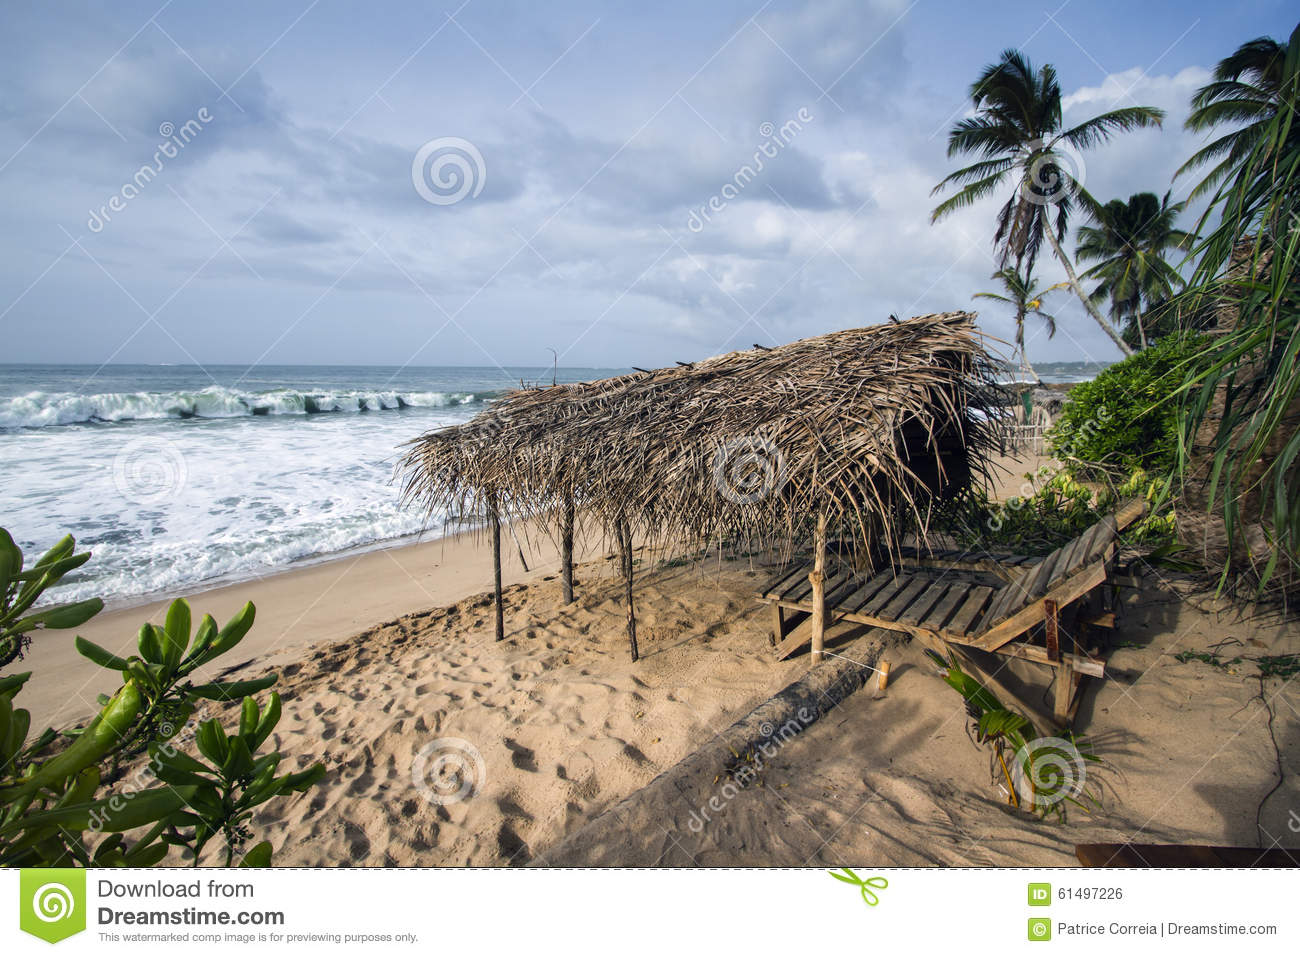 paysage de plage de tangalle sri lanka photo stock image du climate paradis 61497226. Black Bedroom Furniture Sets. Home Design Ideas